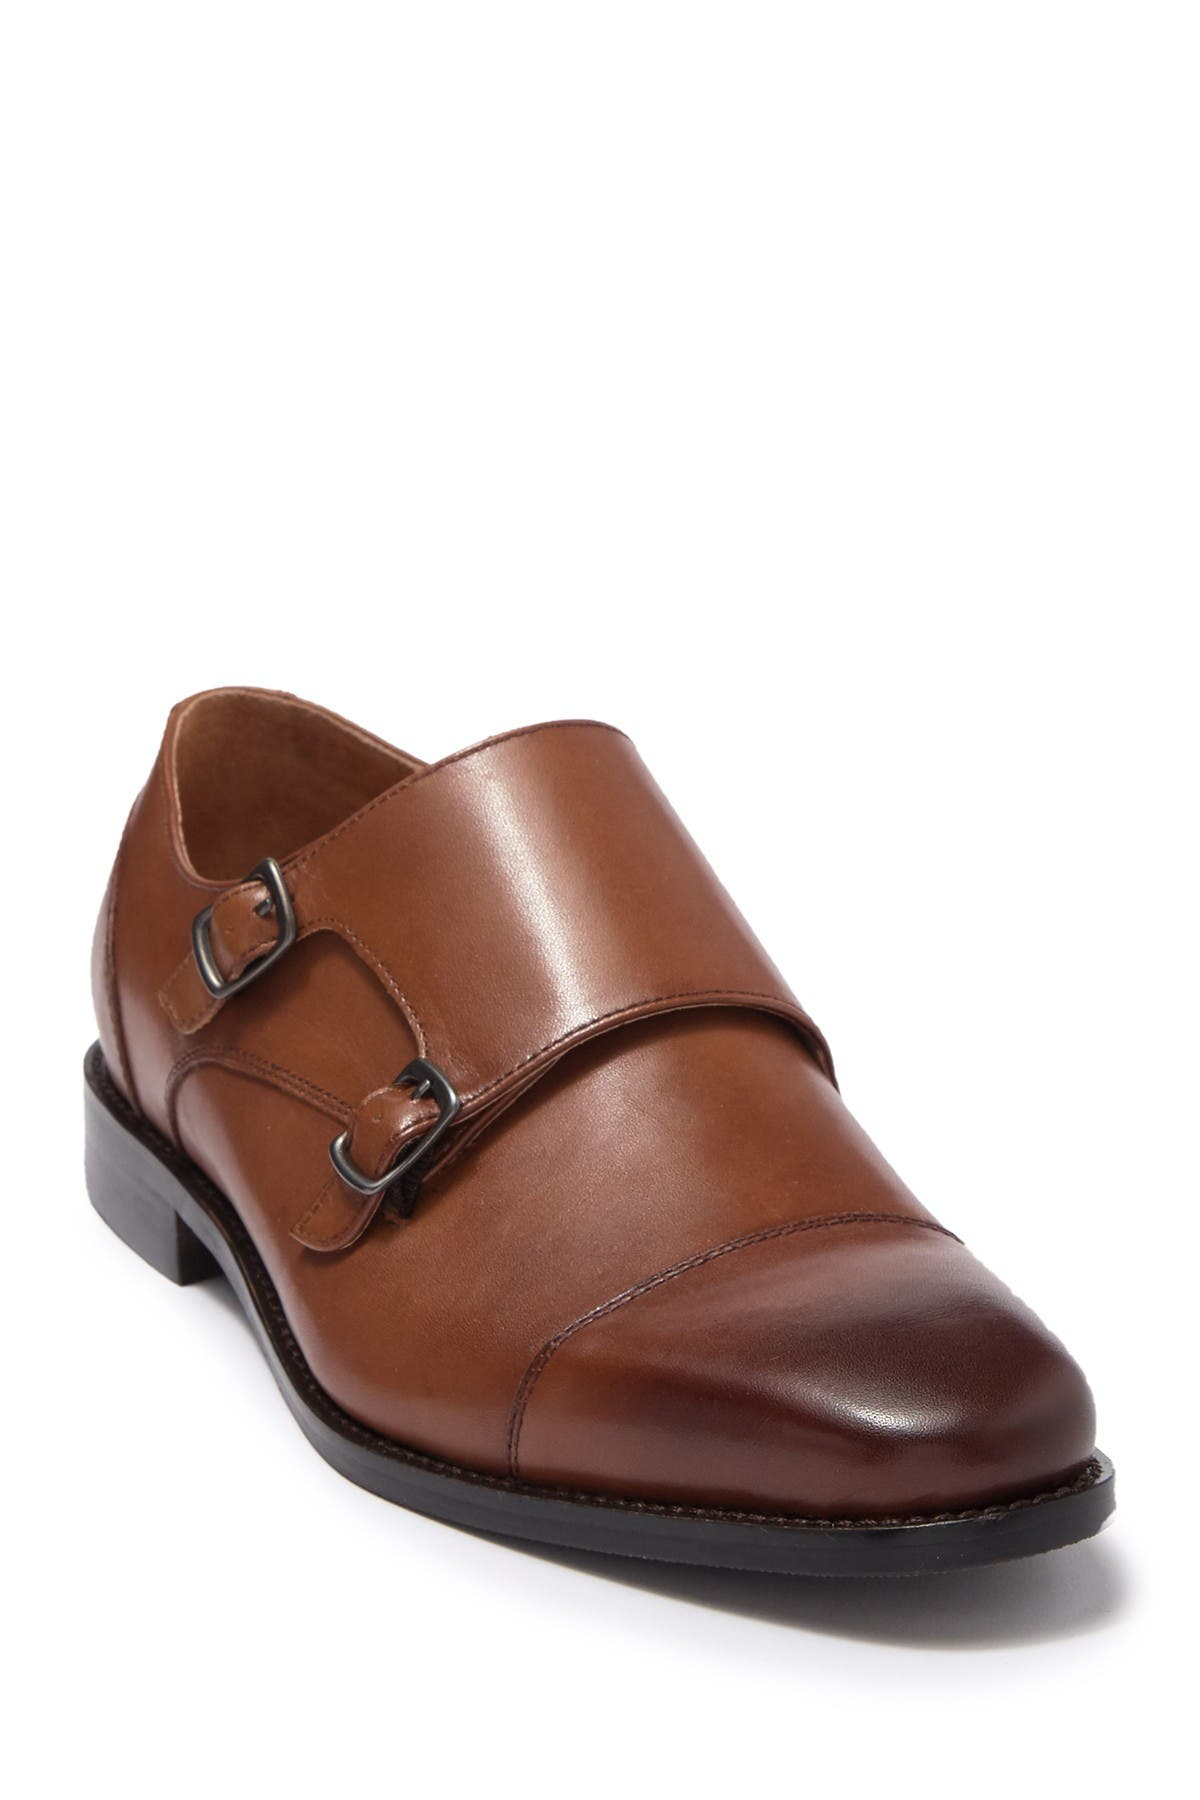 Image of Warfield & Grand Morgan Leather Double Monk Strap Derby